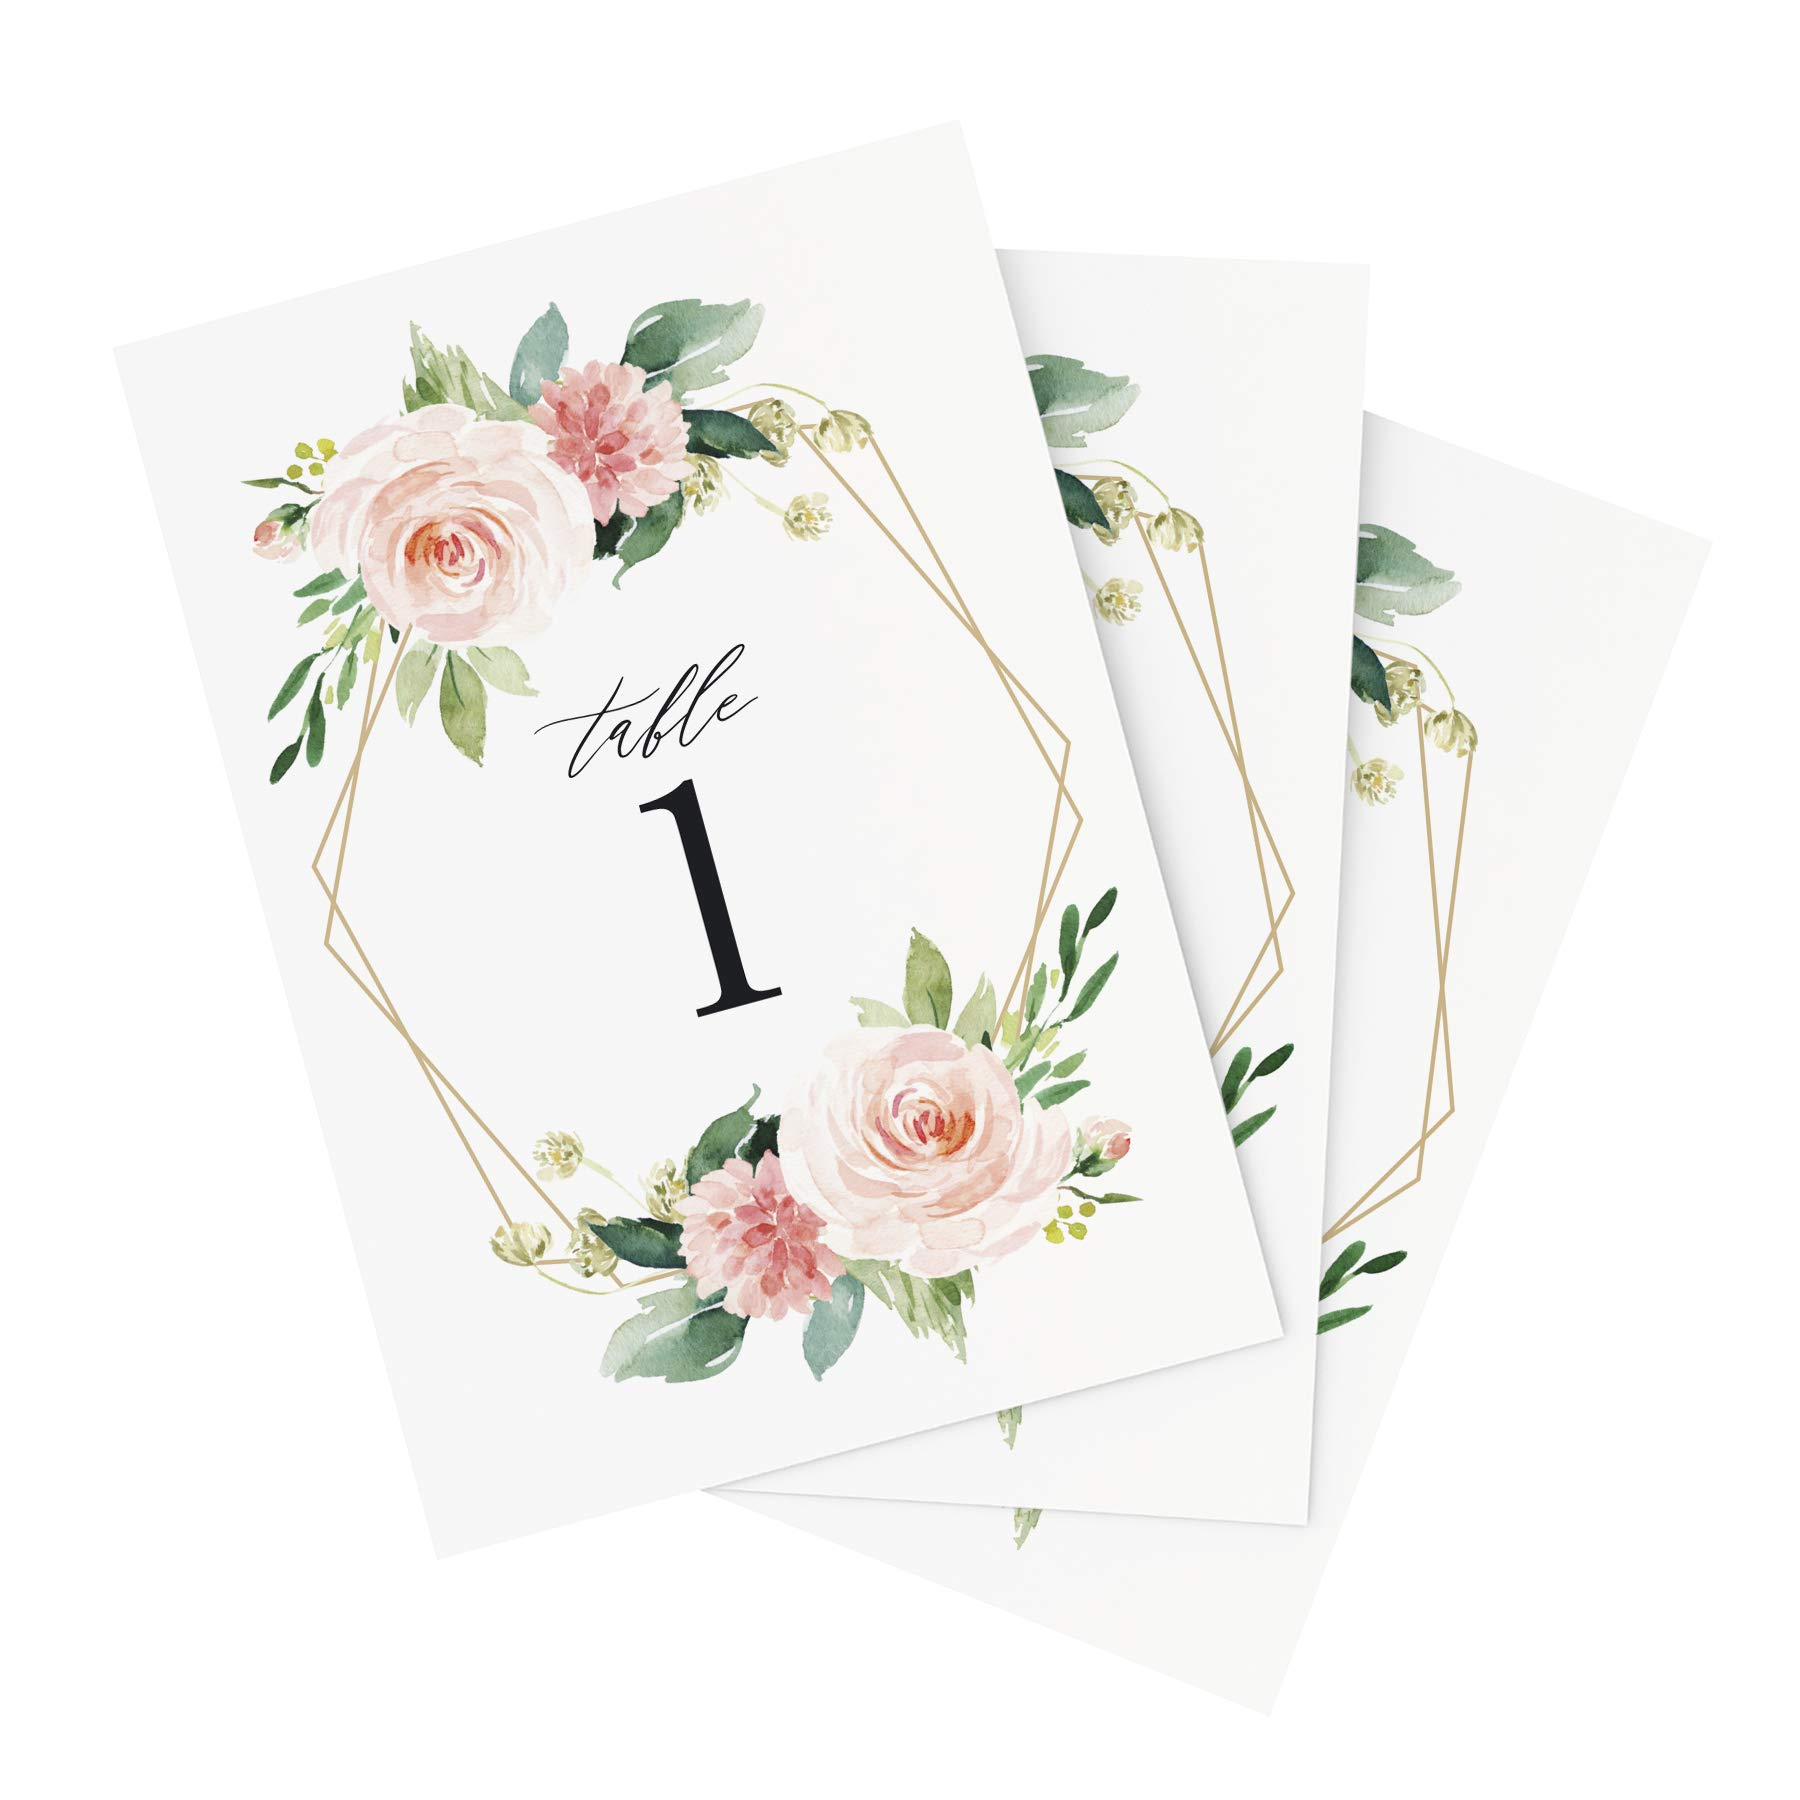 Bliss Paper Boutique Floral Wedding Table Numbers, 1-25, Centerpiece Decorations, Double Sided 4x6 Blush, Coral and Greenery Geometric Style Design, Numbers 1-25 & Head Table Card Included — from